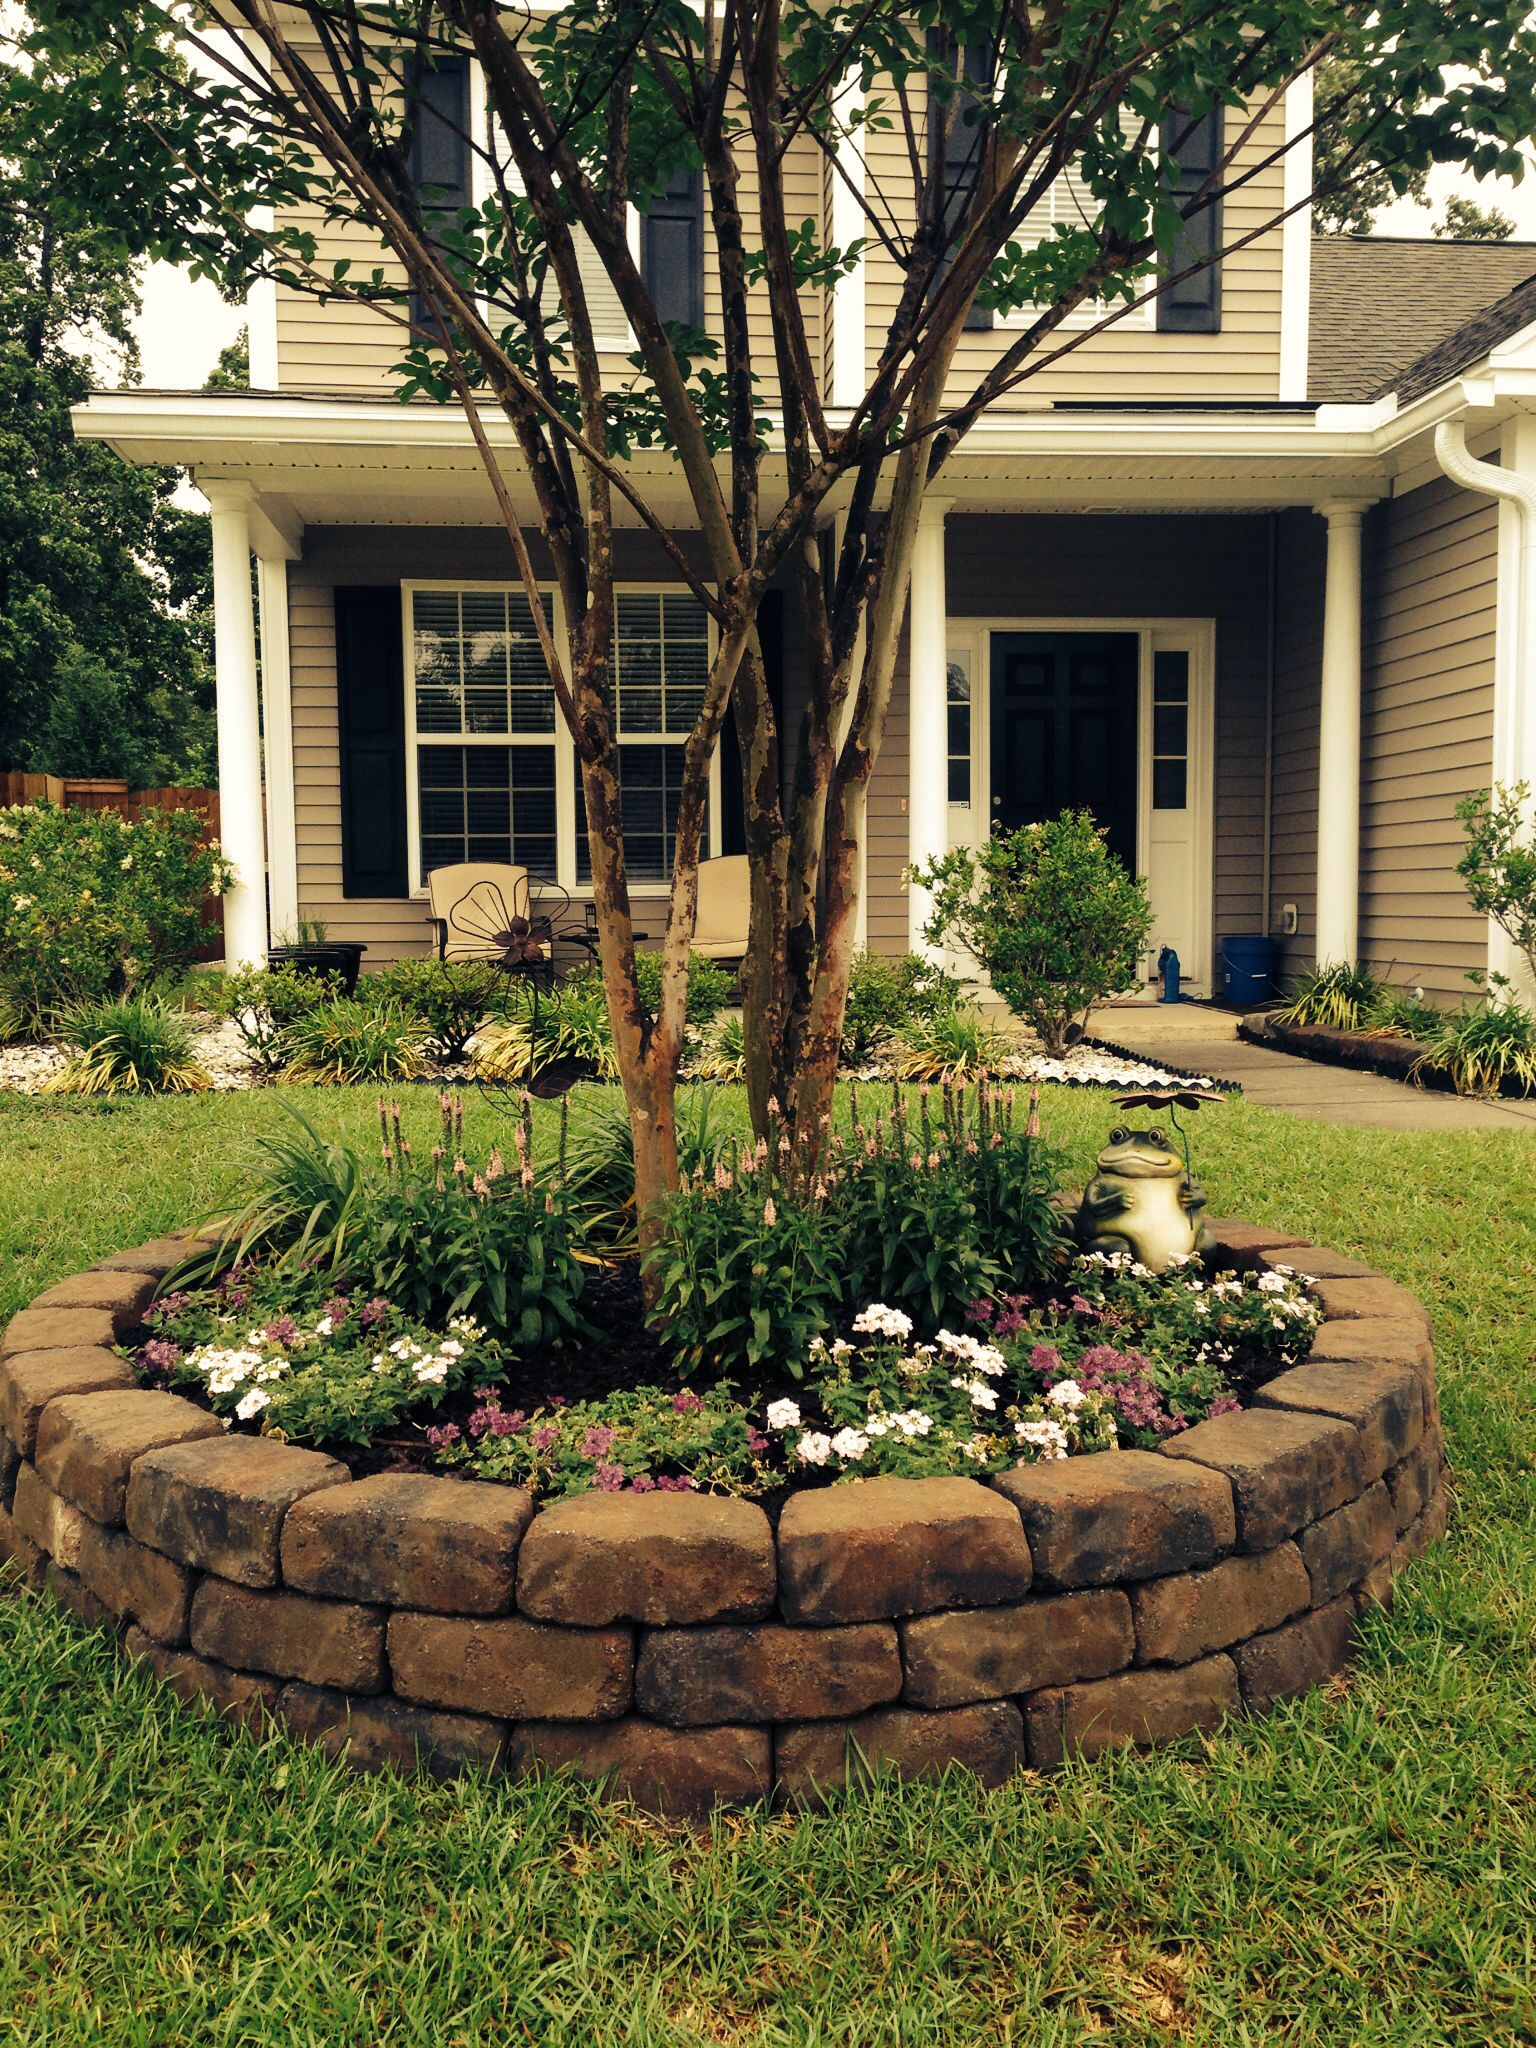 Share for Ideas of front yard landscaping